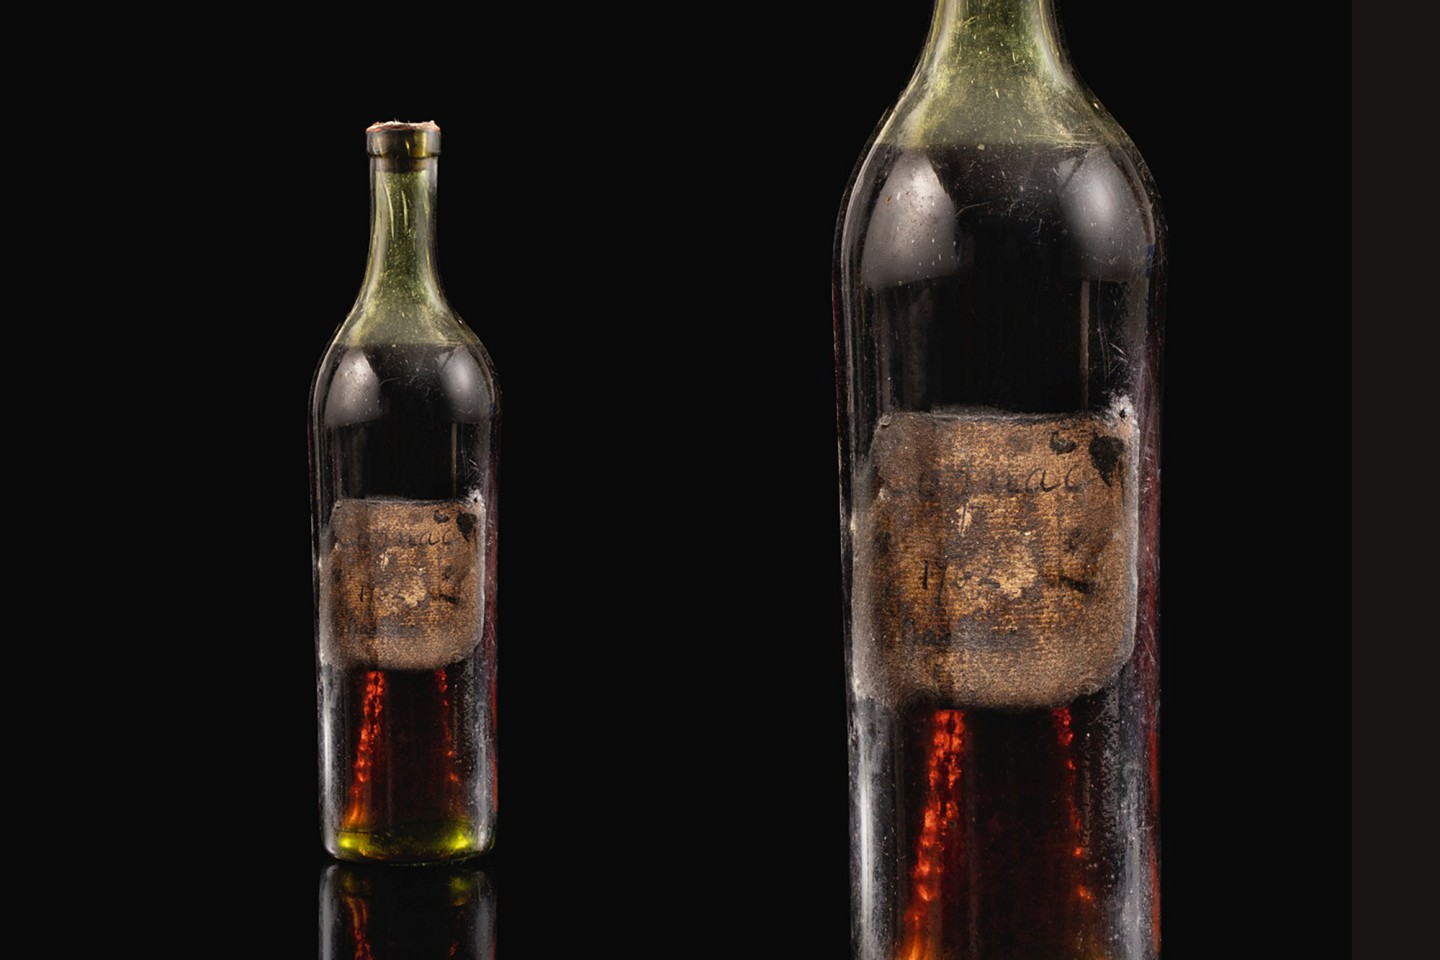 Of the original three bottles of 1762 Gautier Cognac, one sold at auction in 2014 and was subsequently destroyed, one went to the Maison Gautier Museum and this bottle is the sole remaining bottle available to the public. It will sell at auction on May 28, 2020.